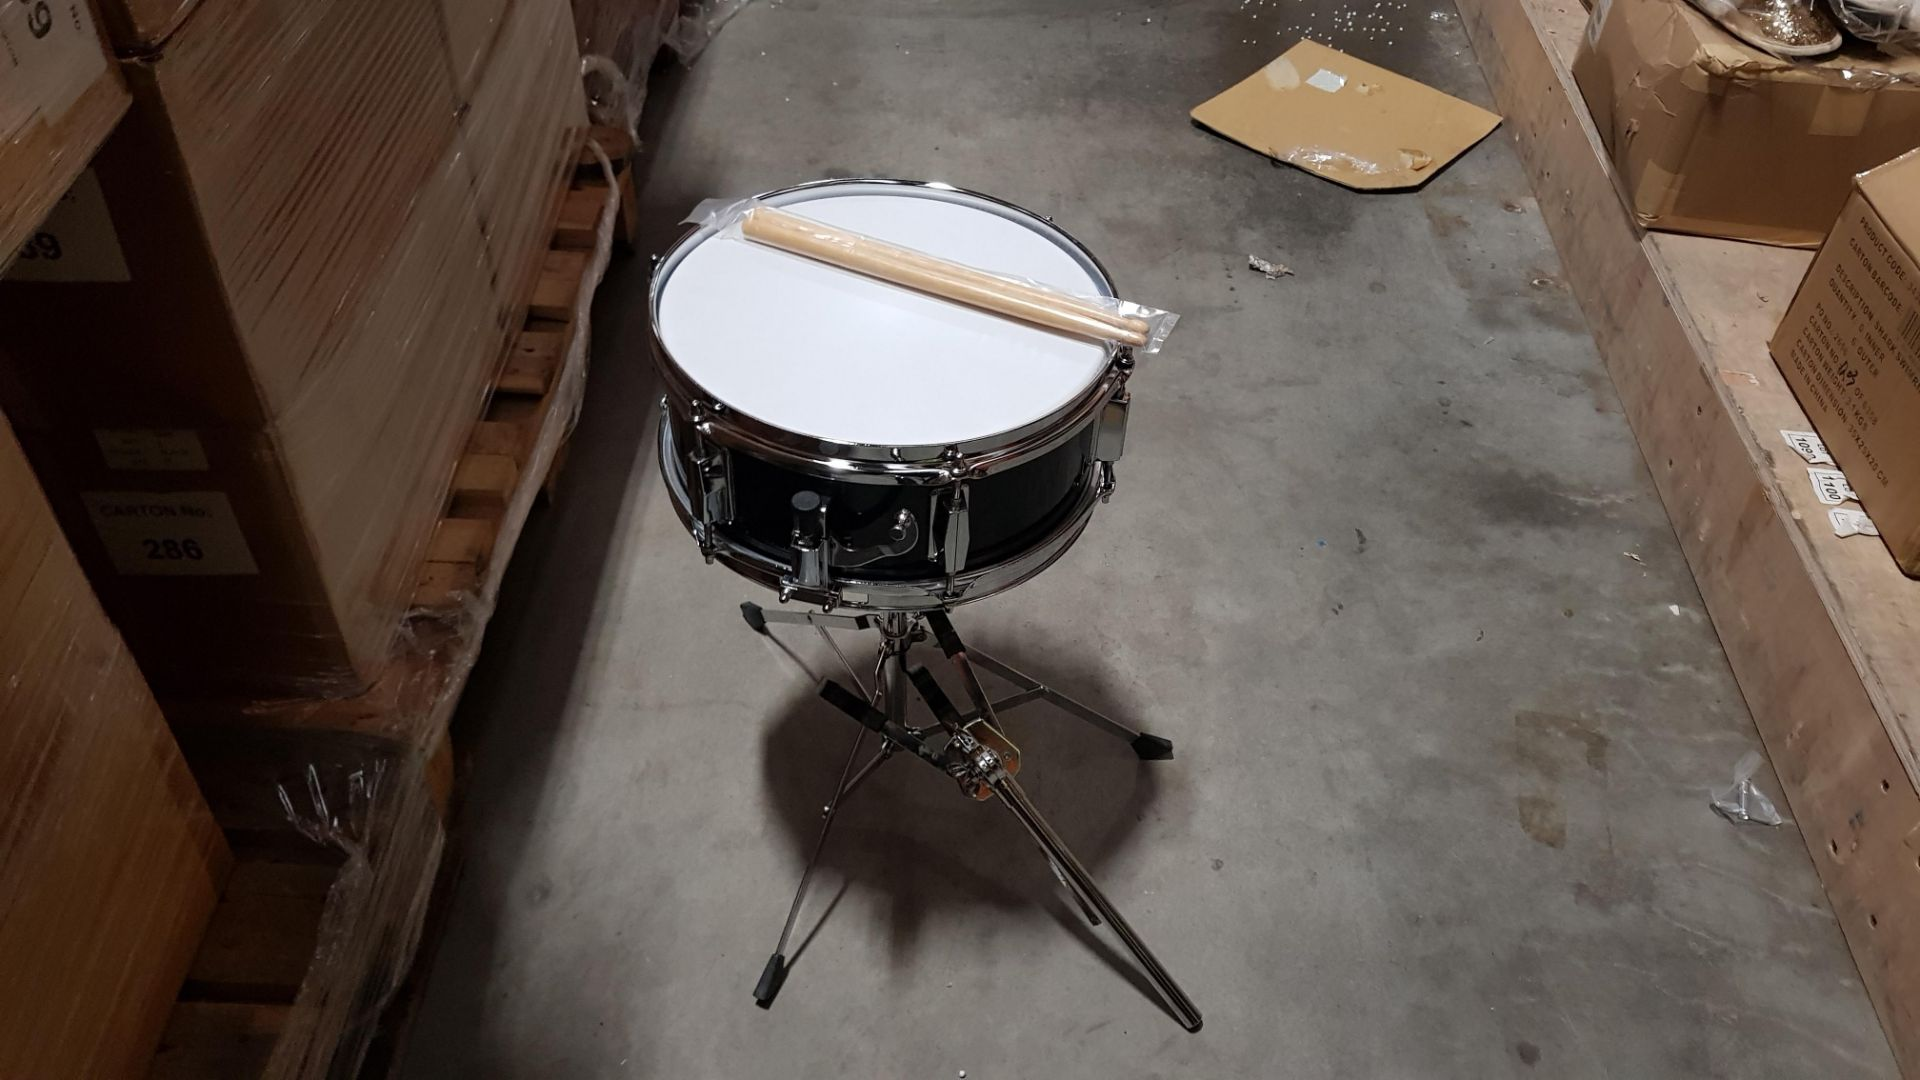 10 X BRAND NEW MINI SNARE DRUM KIT WITH DRUM PARTS